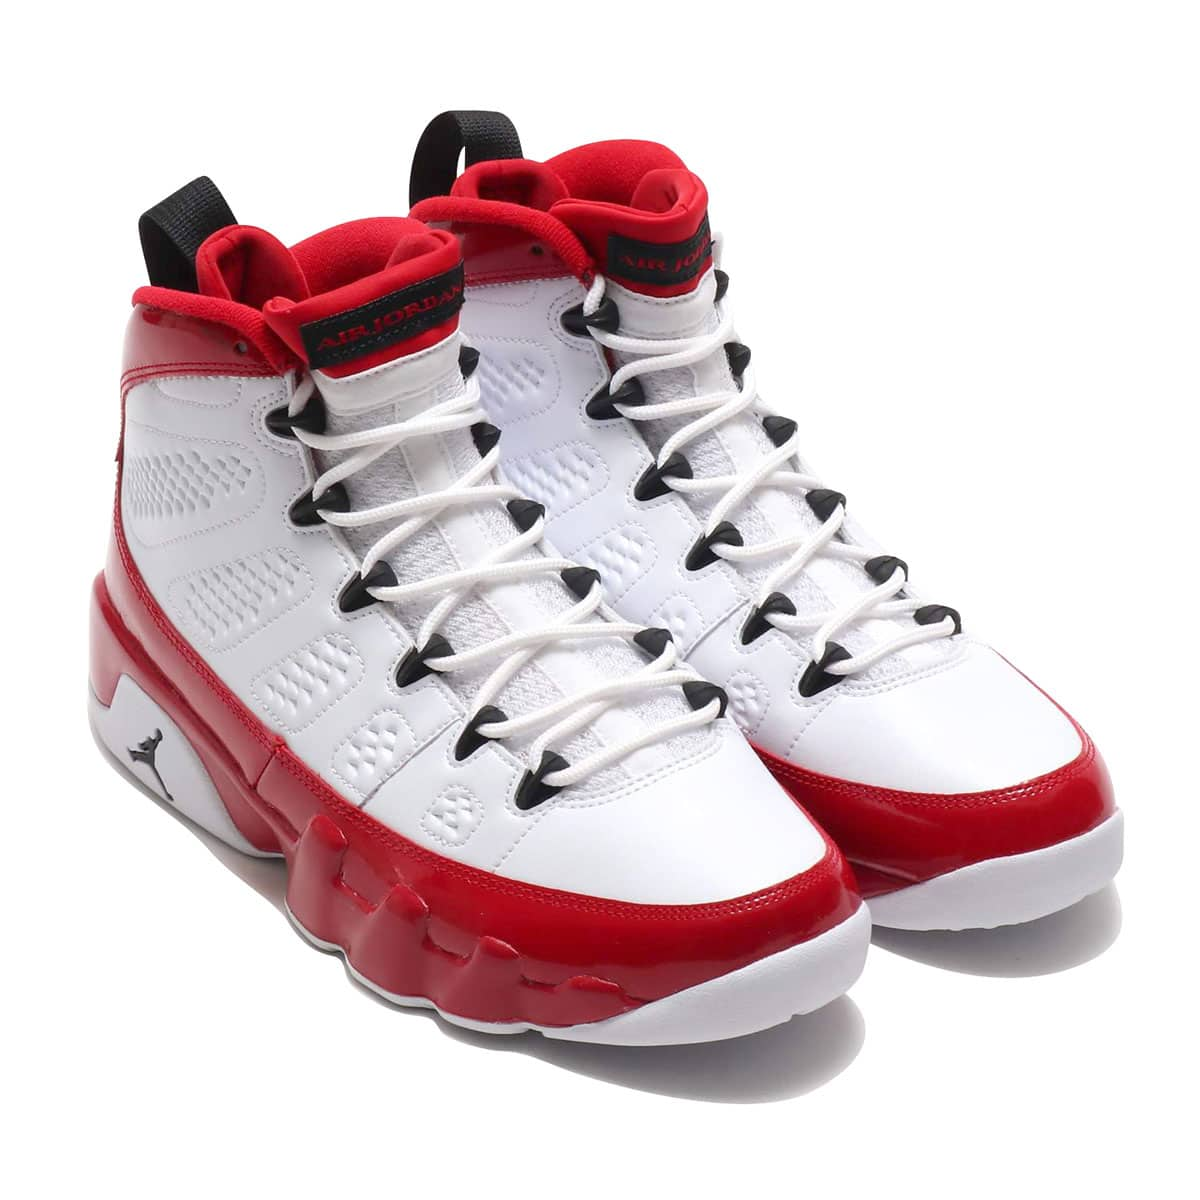 NIKE AIR JORDAN 9 RETRO WHITE/BLACK-GYM RED 19HO-S_photo_large